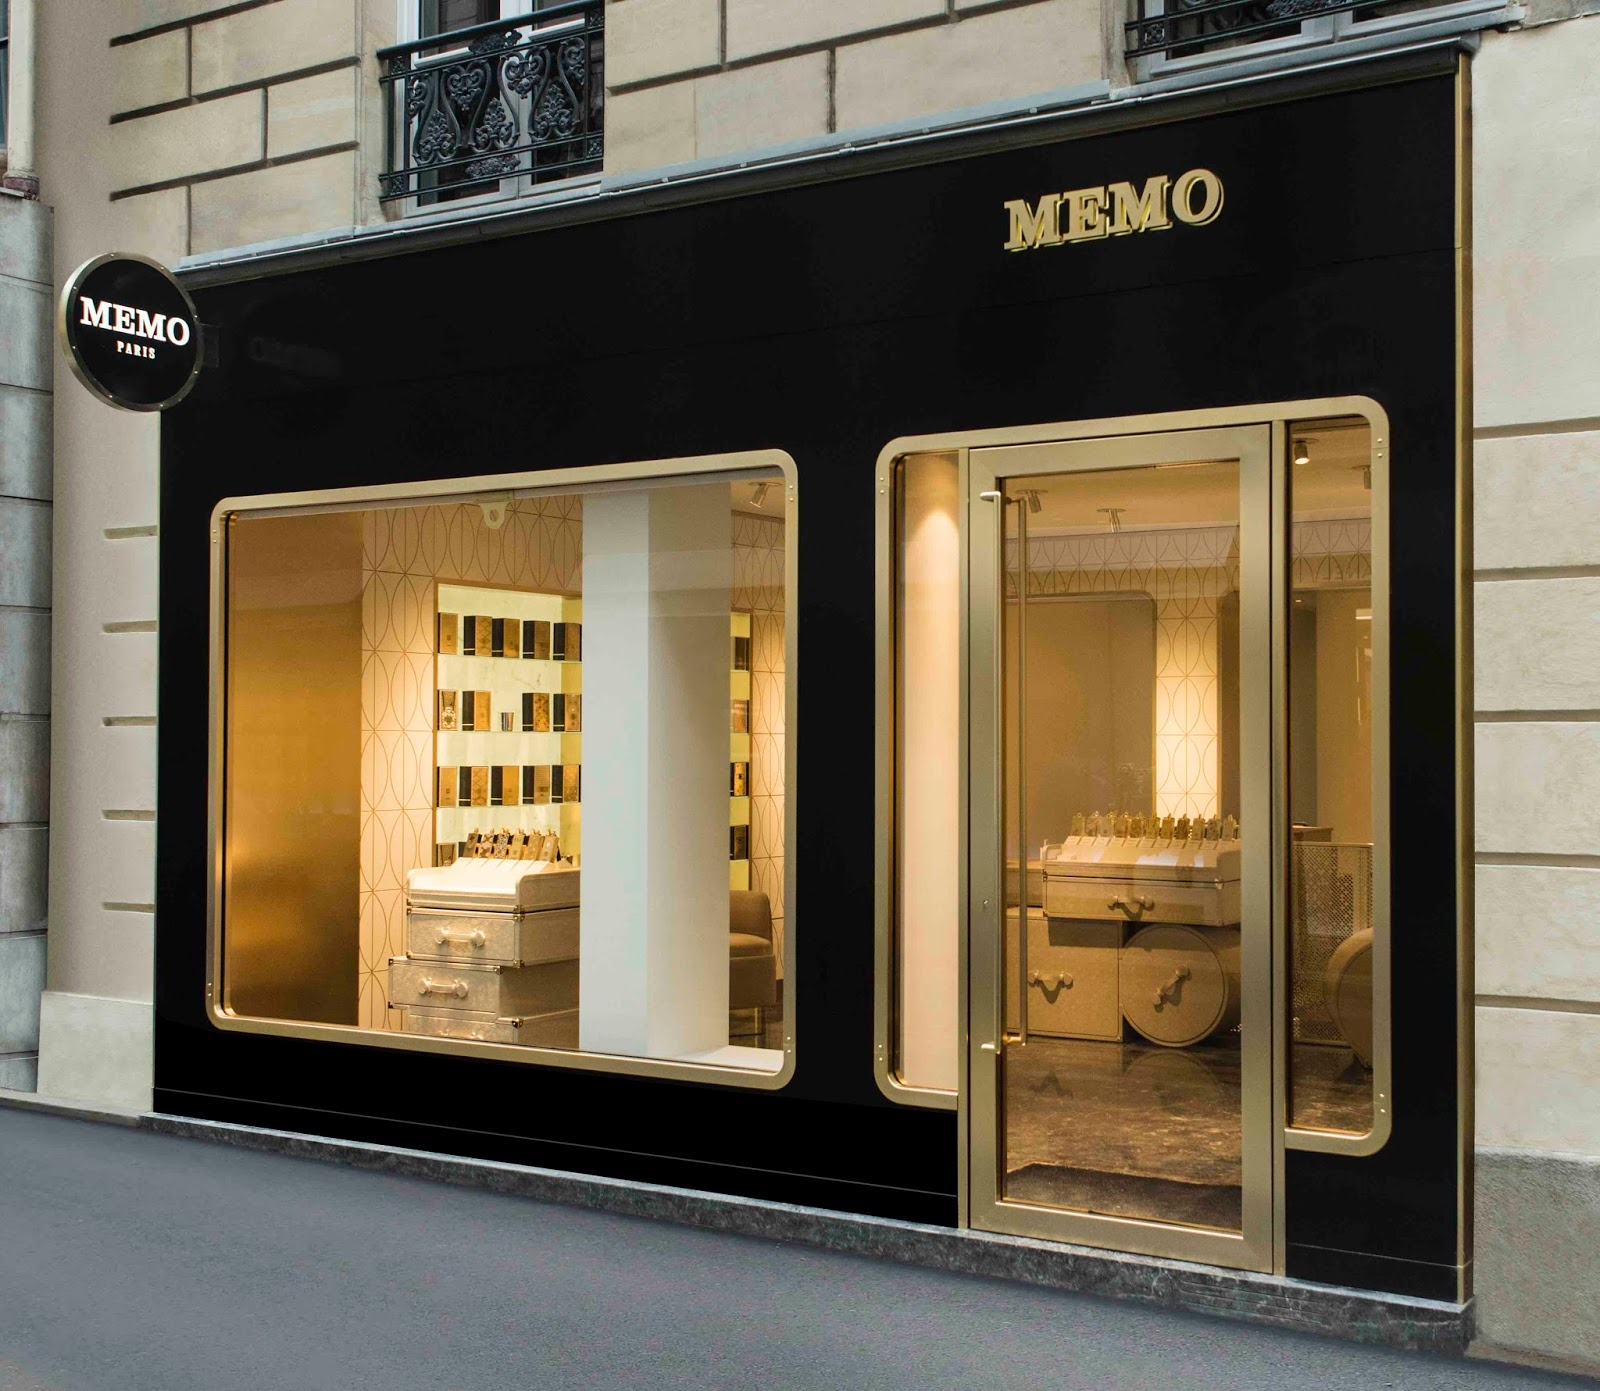 Michele In Wonderland Memo Installe Ses Parfums Rue Cambon